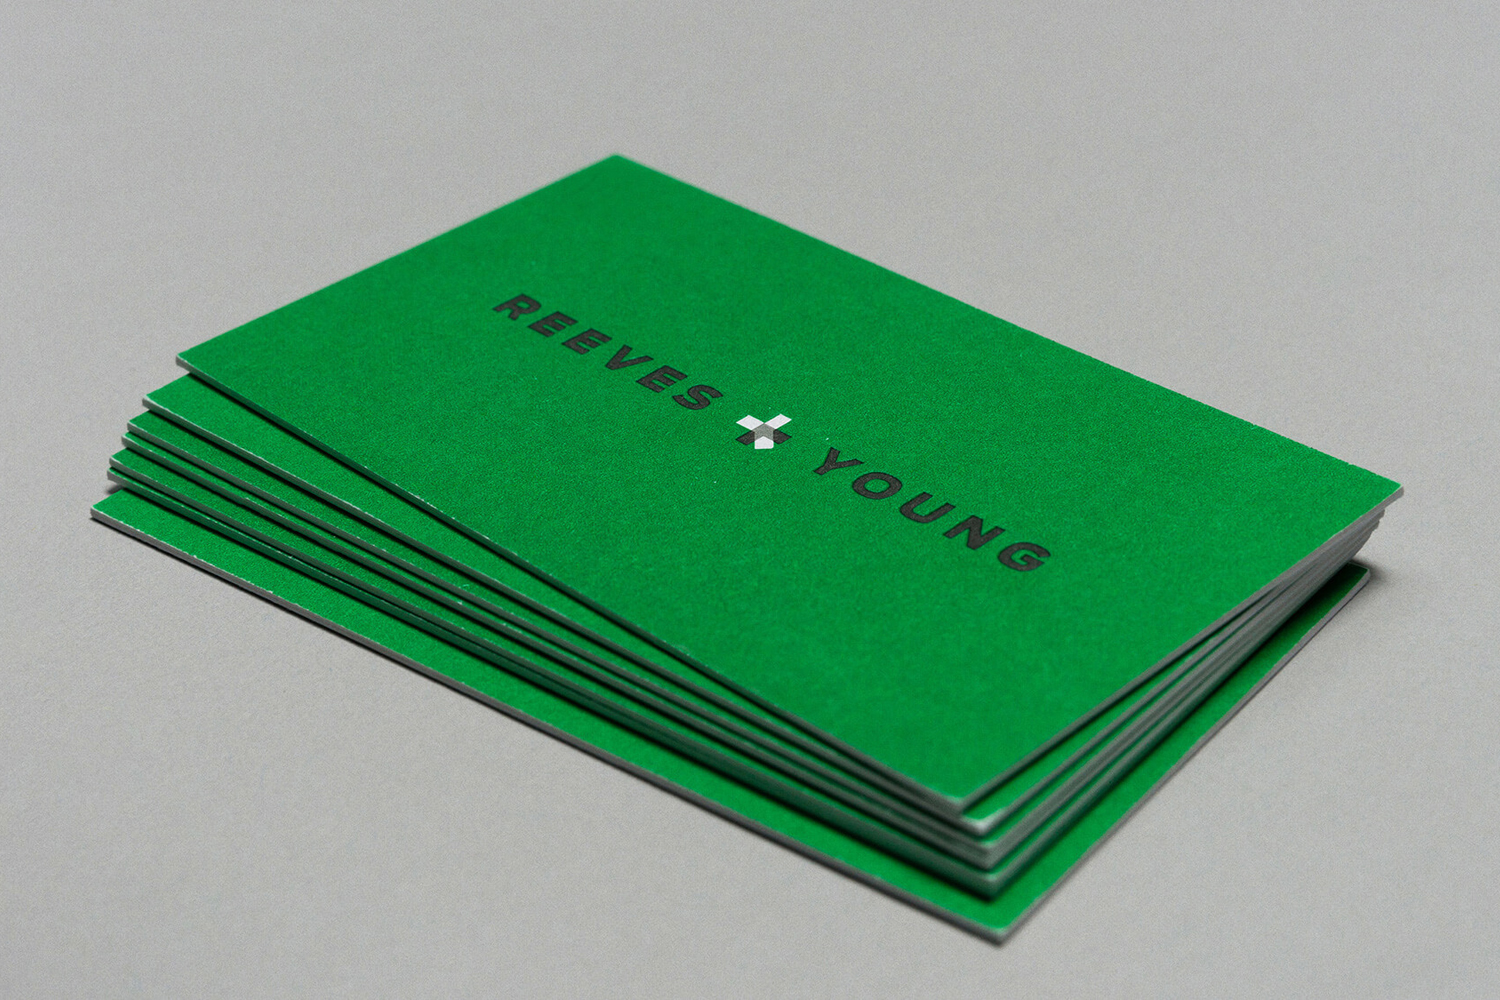 Brand identity and business cards for Atlanta construction business Reeves & Young by graphic design studio Matchstic